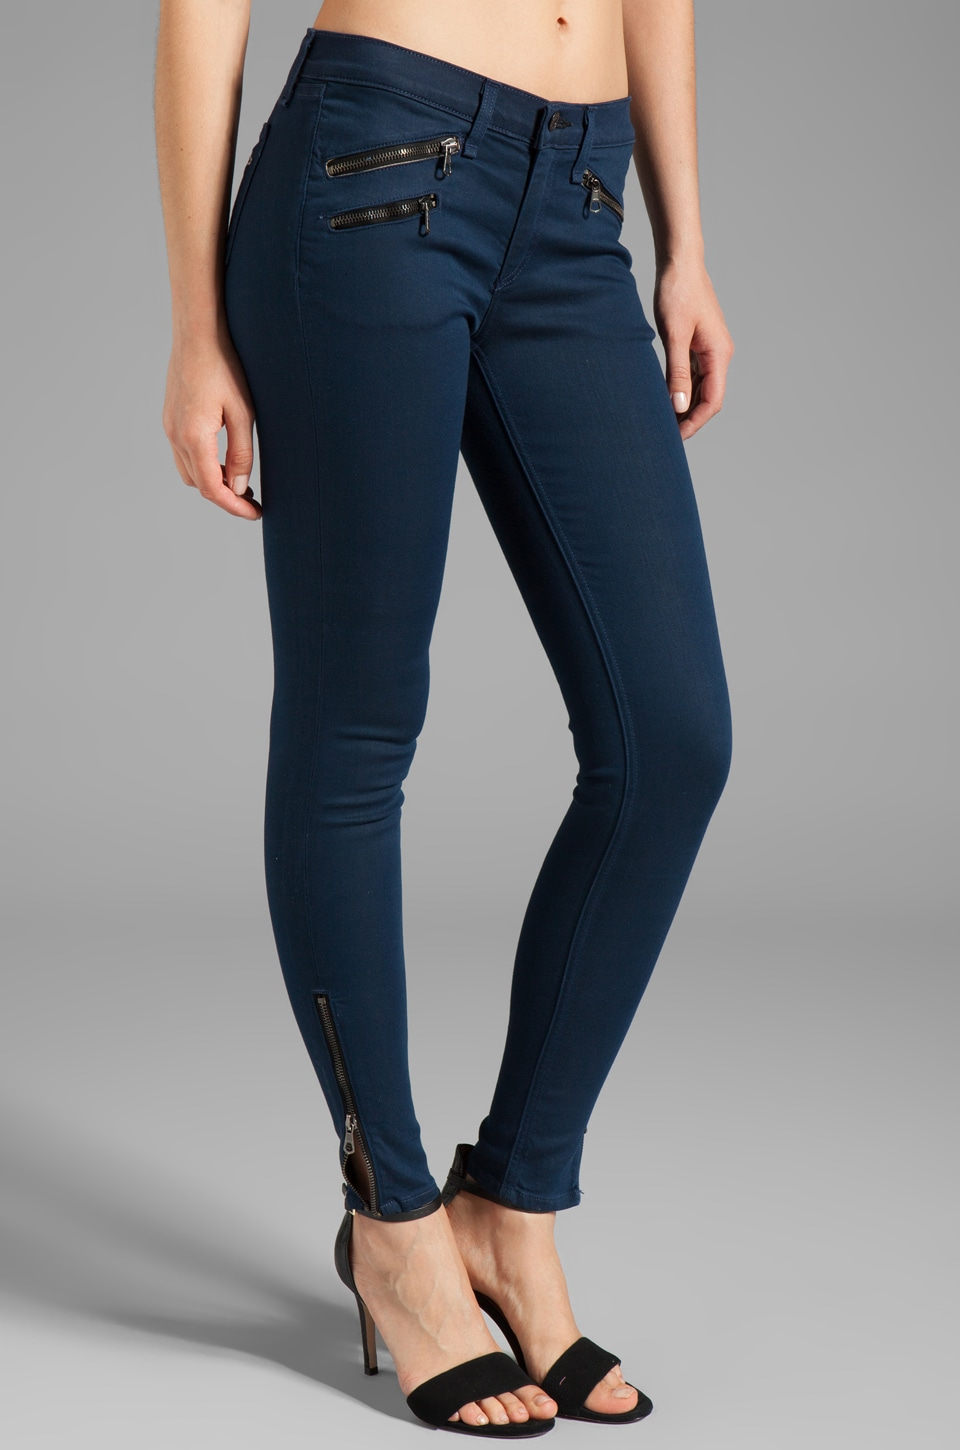 rag & bone/JEAN Mid Rise Zipper Legging in Cadet Blue